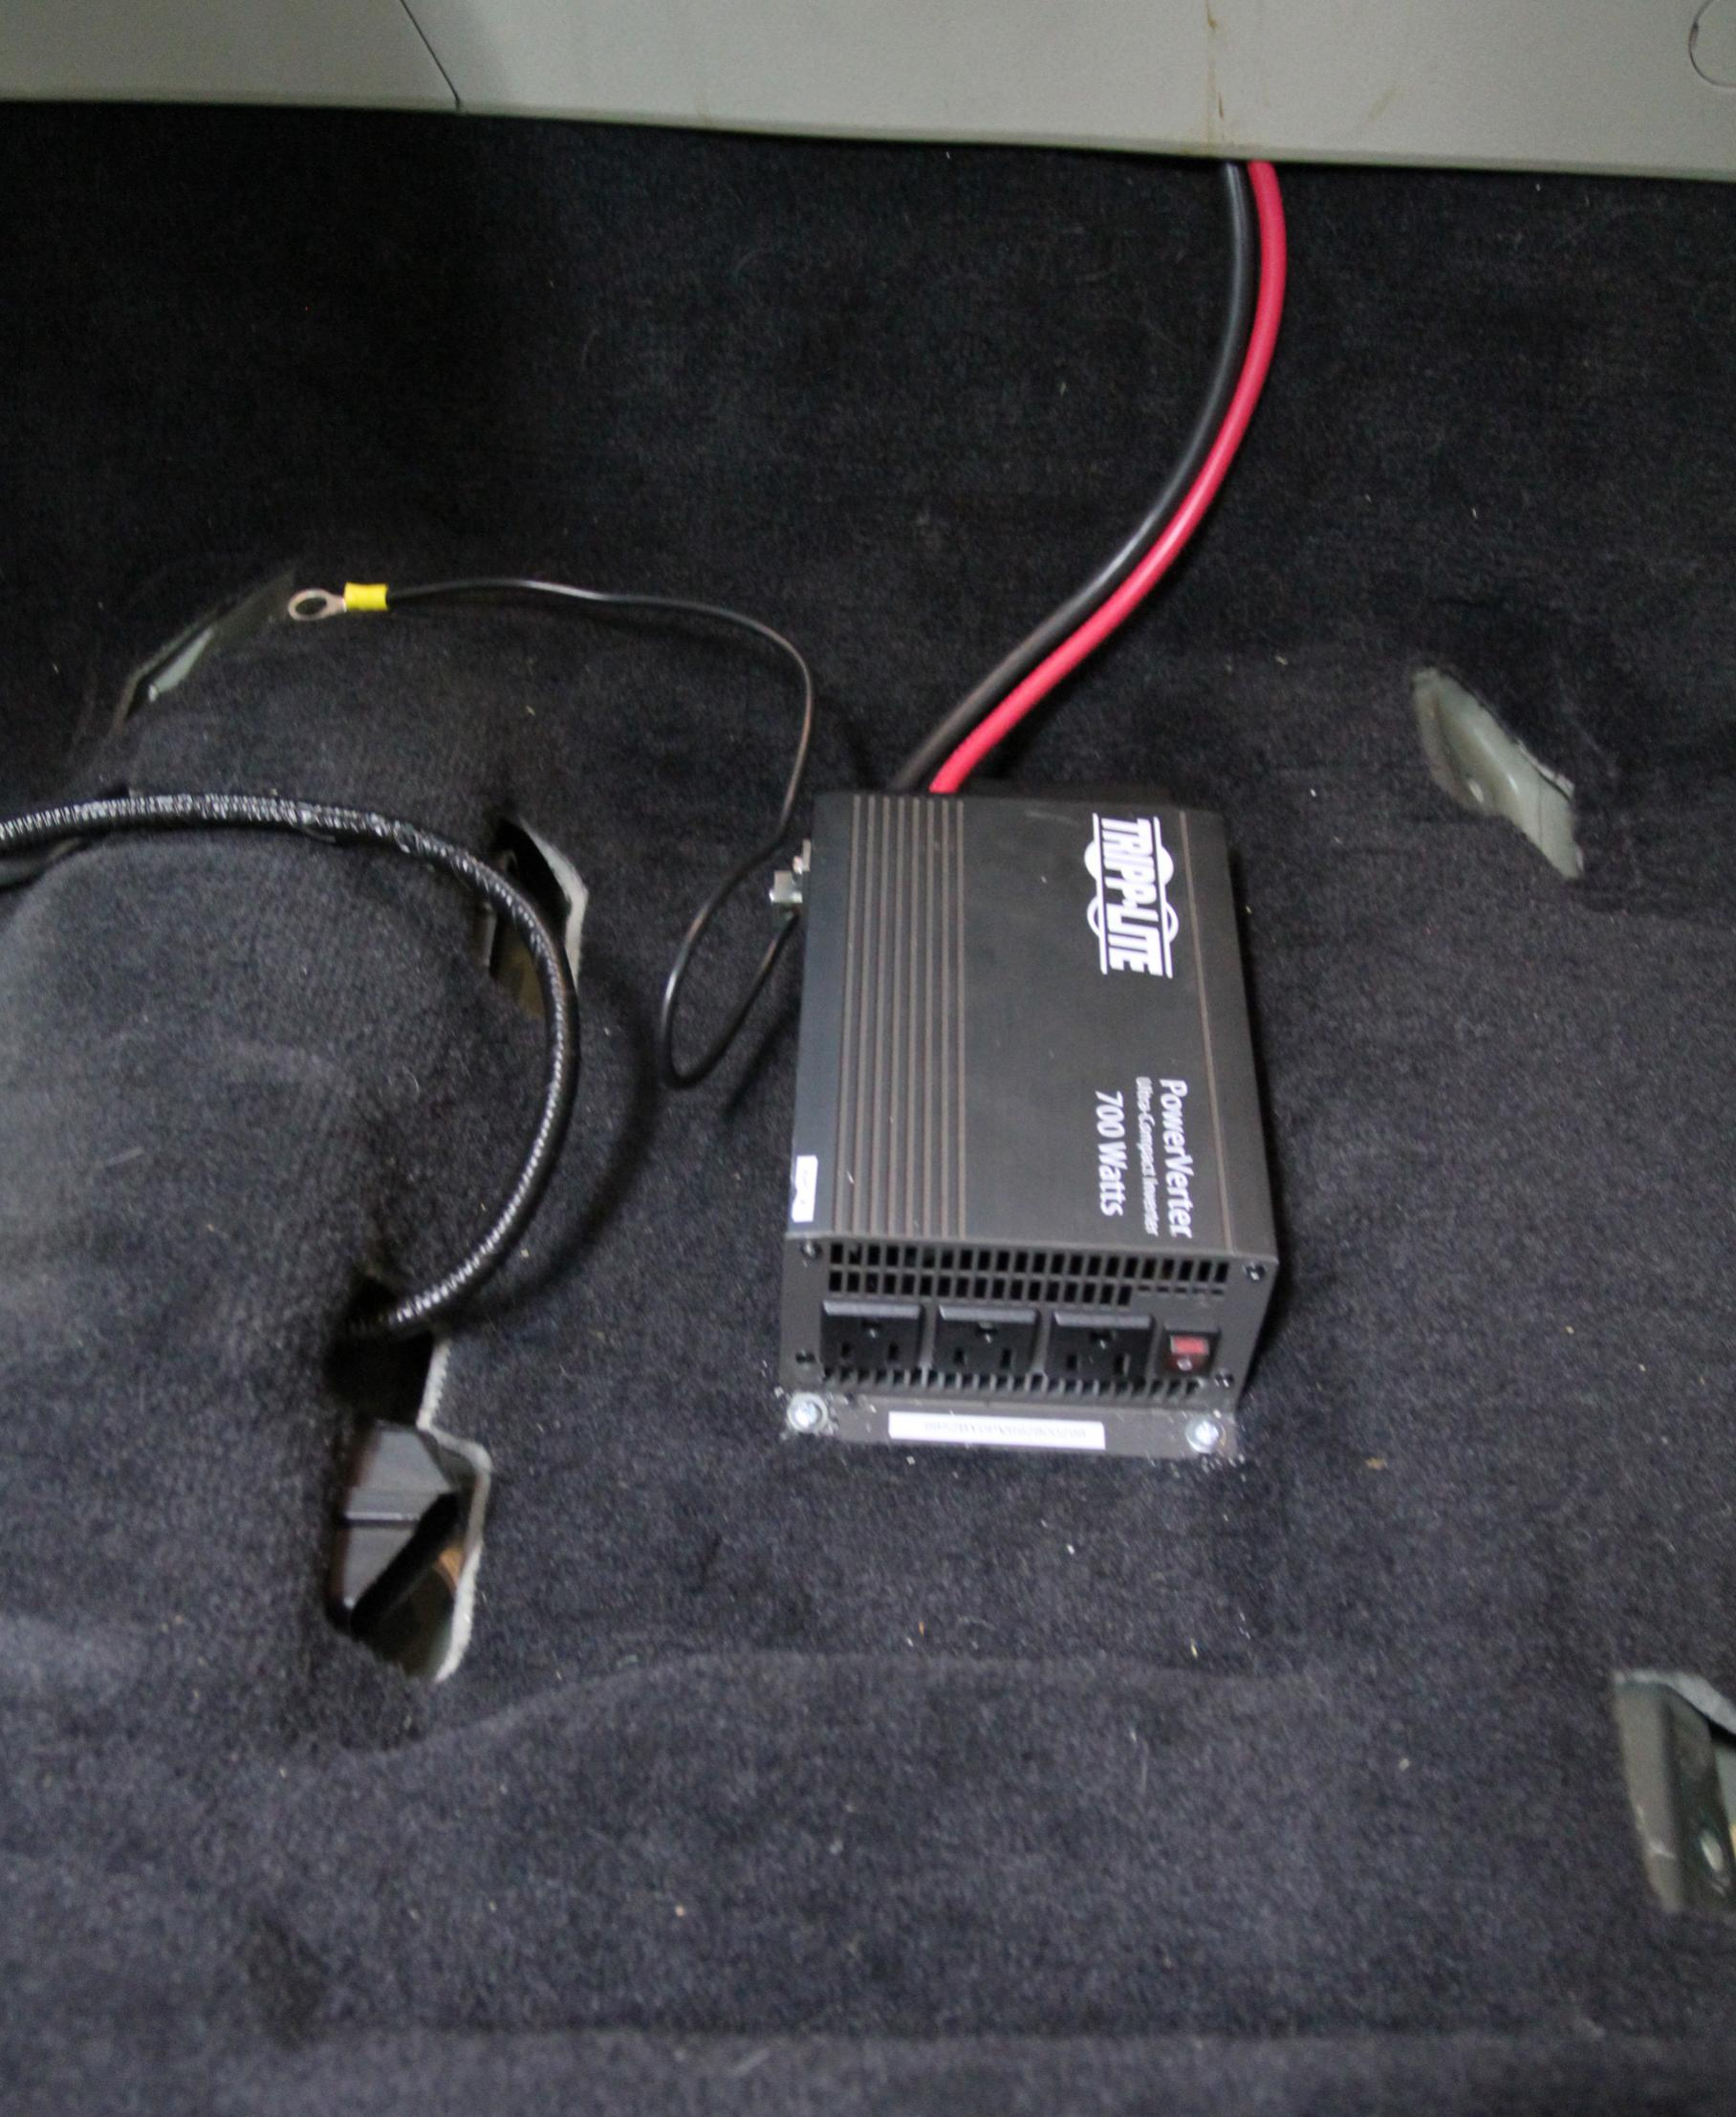 110v Power Outlet install guide? - Page 4 - Subaru Outback - Subaru ...